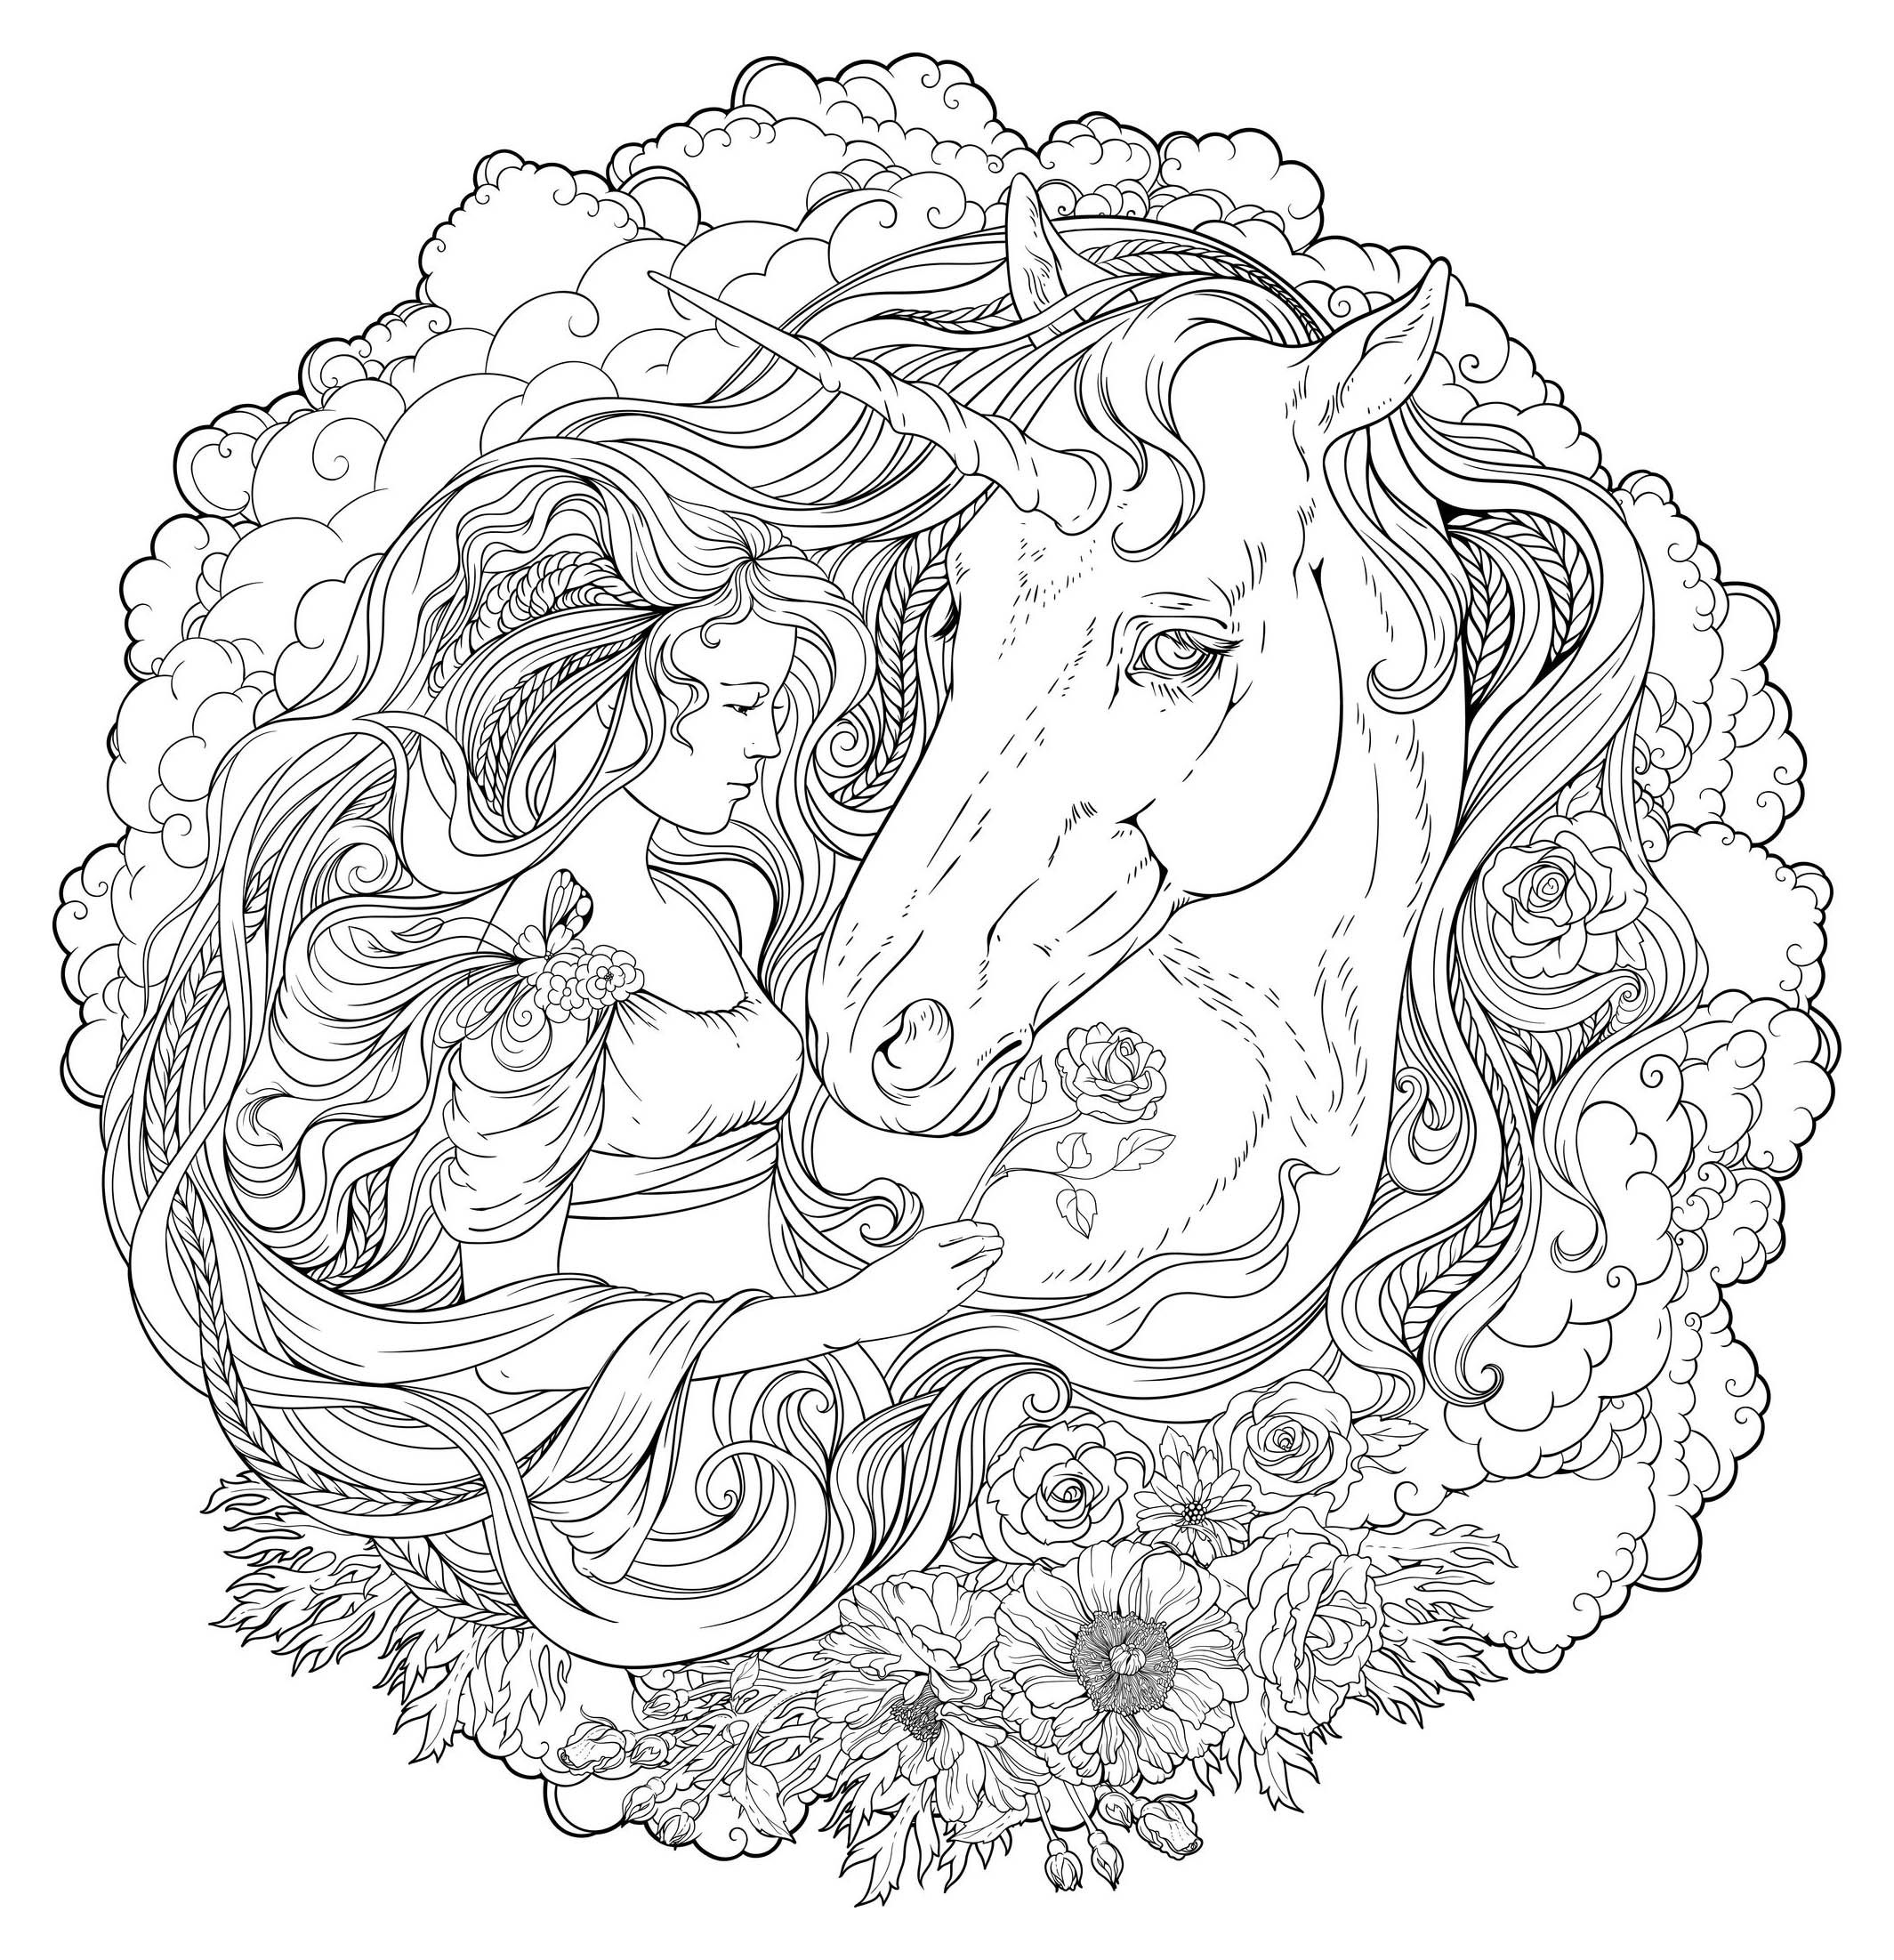 Unicorn And Girl In Clouds Unicorns Coloring Pages For Adults